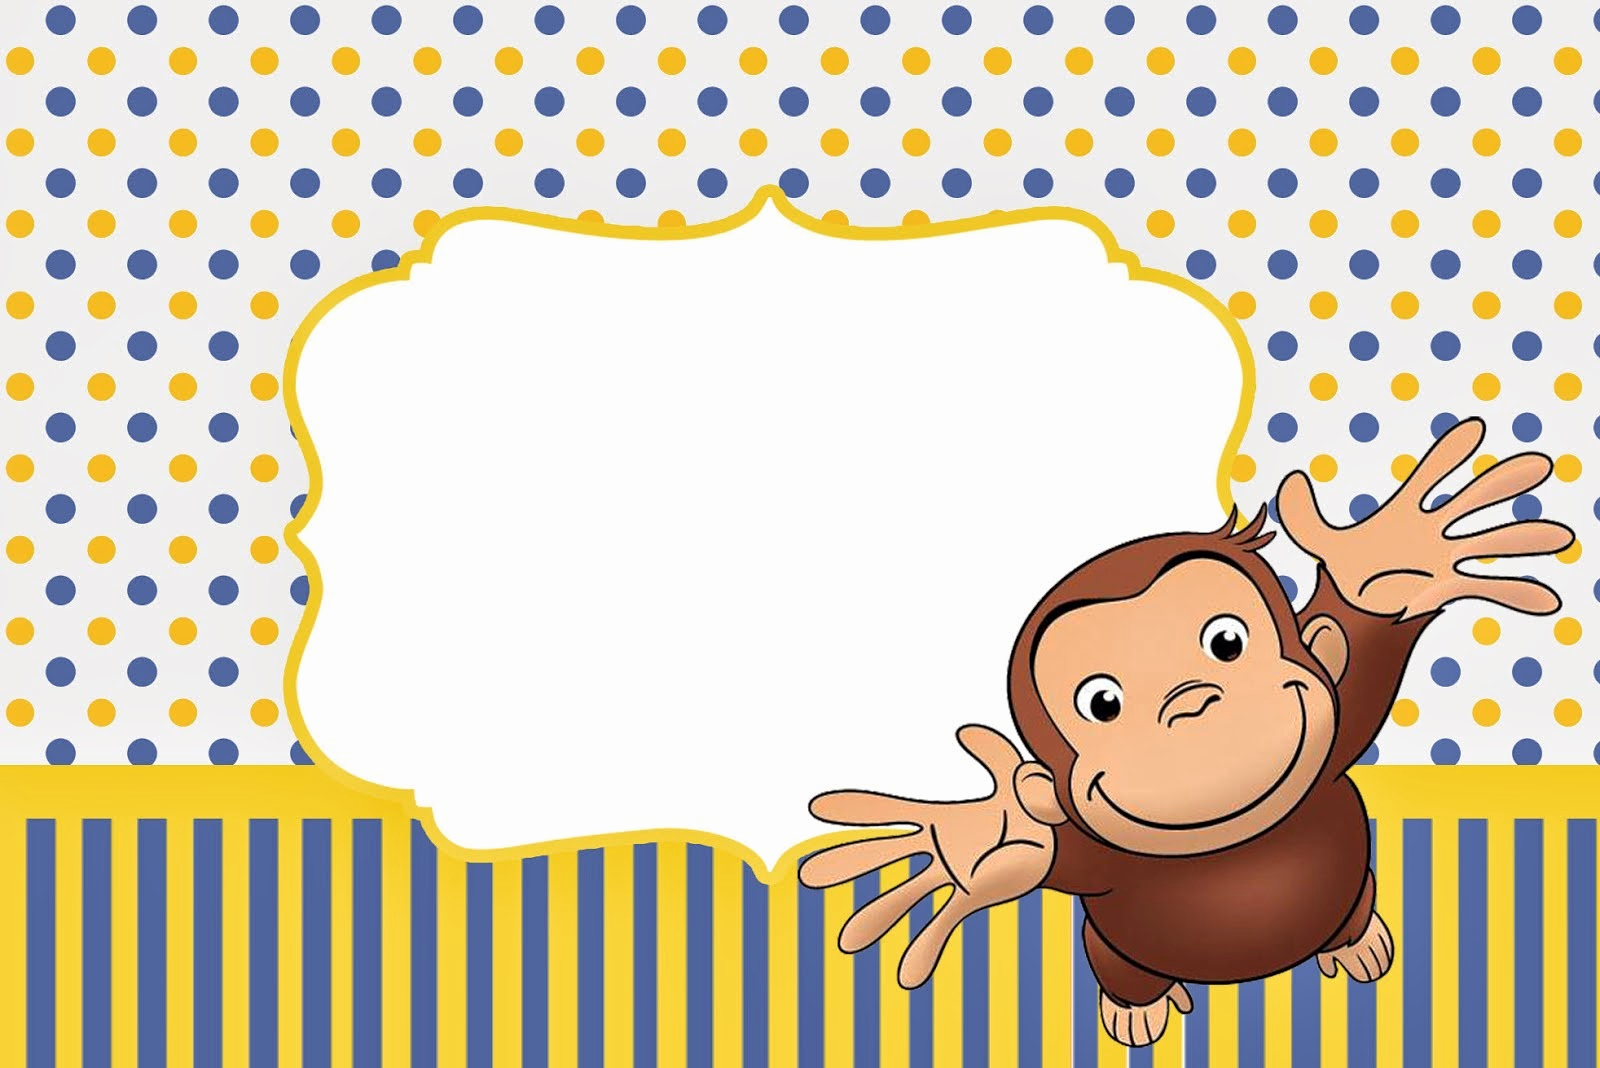 Curious George Invitation Template Luxury Curious George Free Printable Invitations